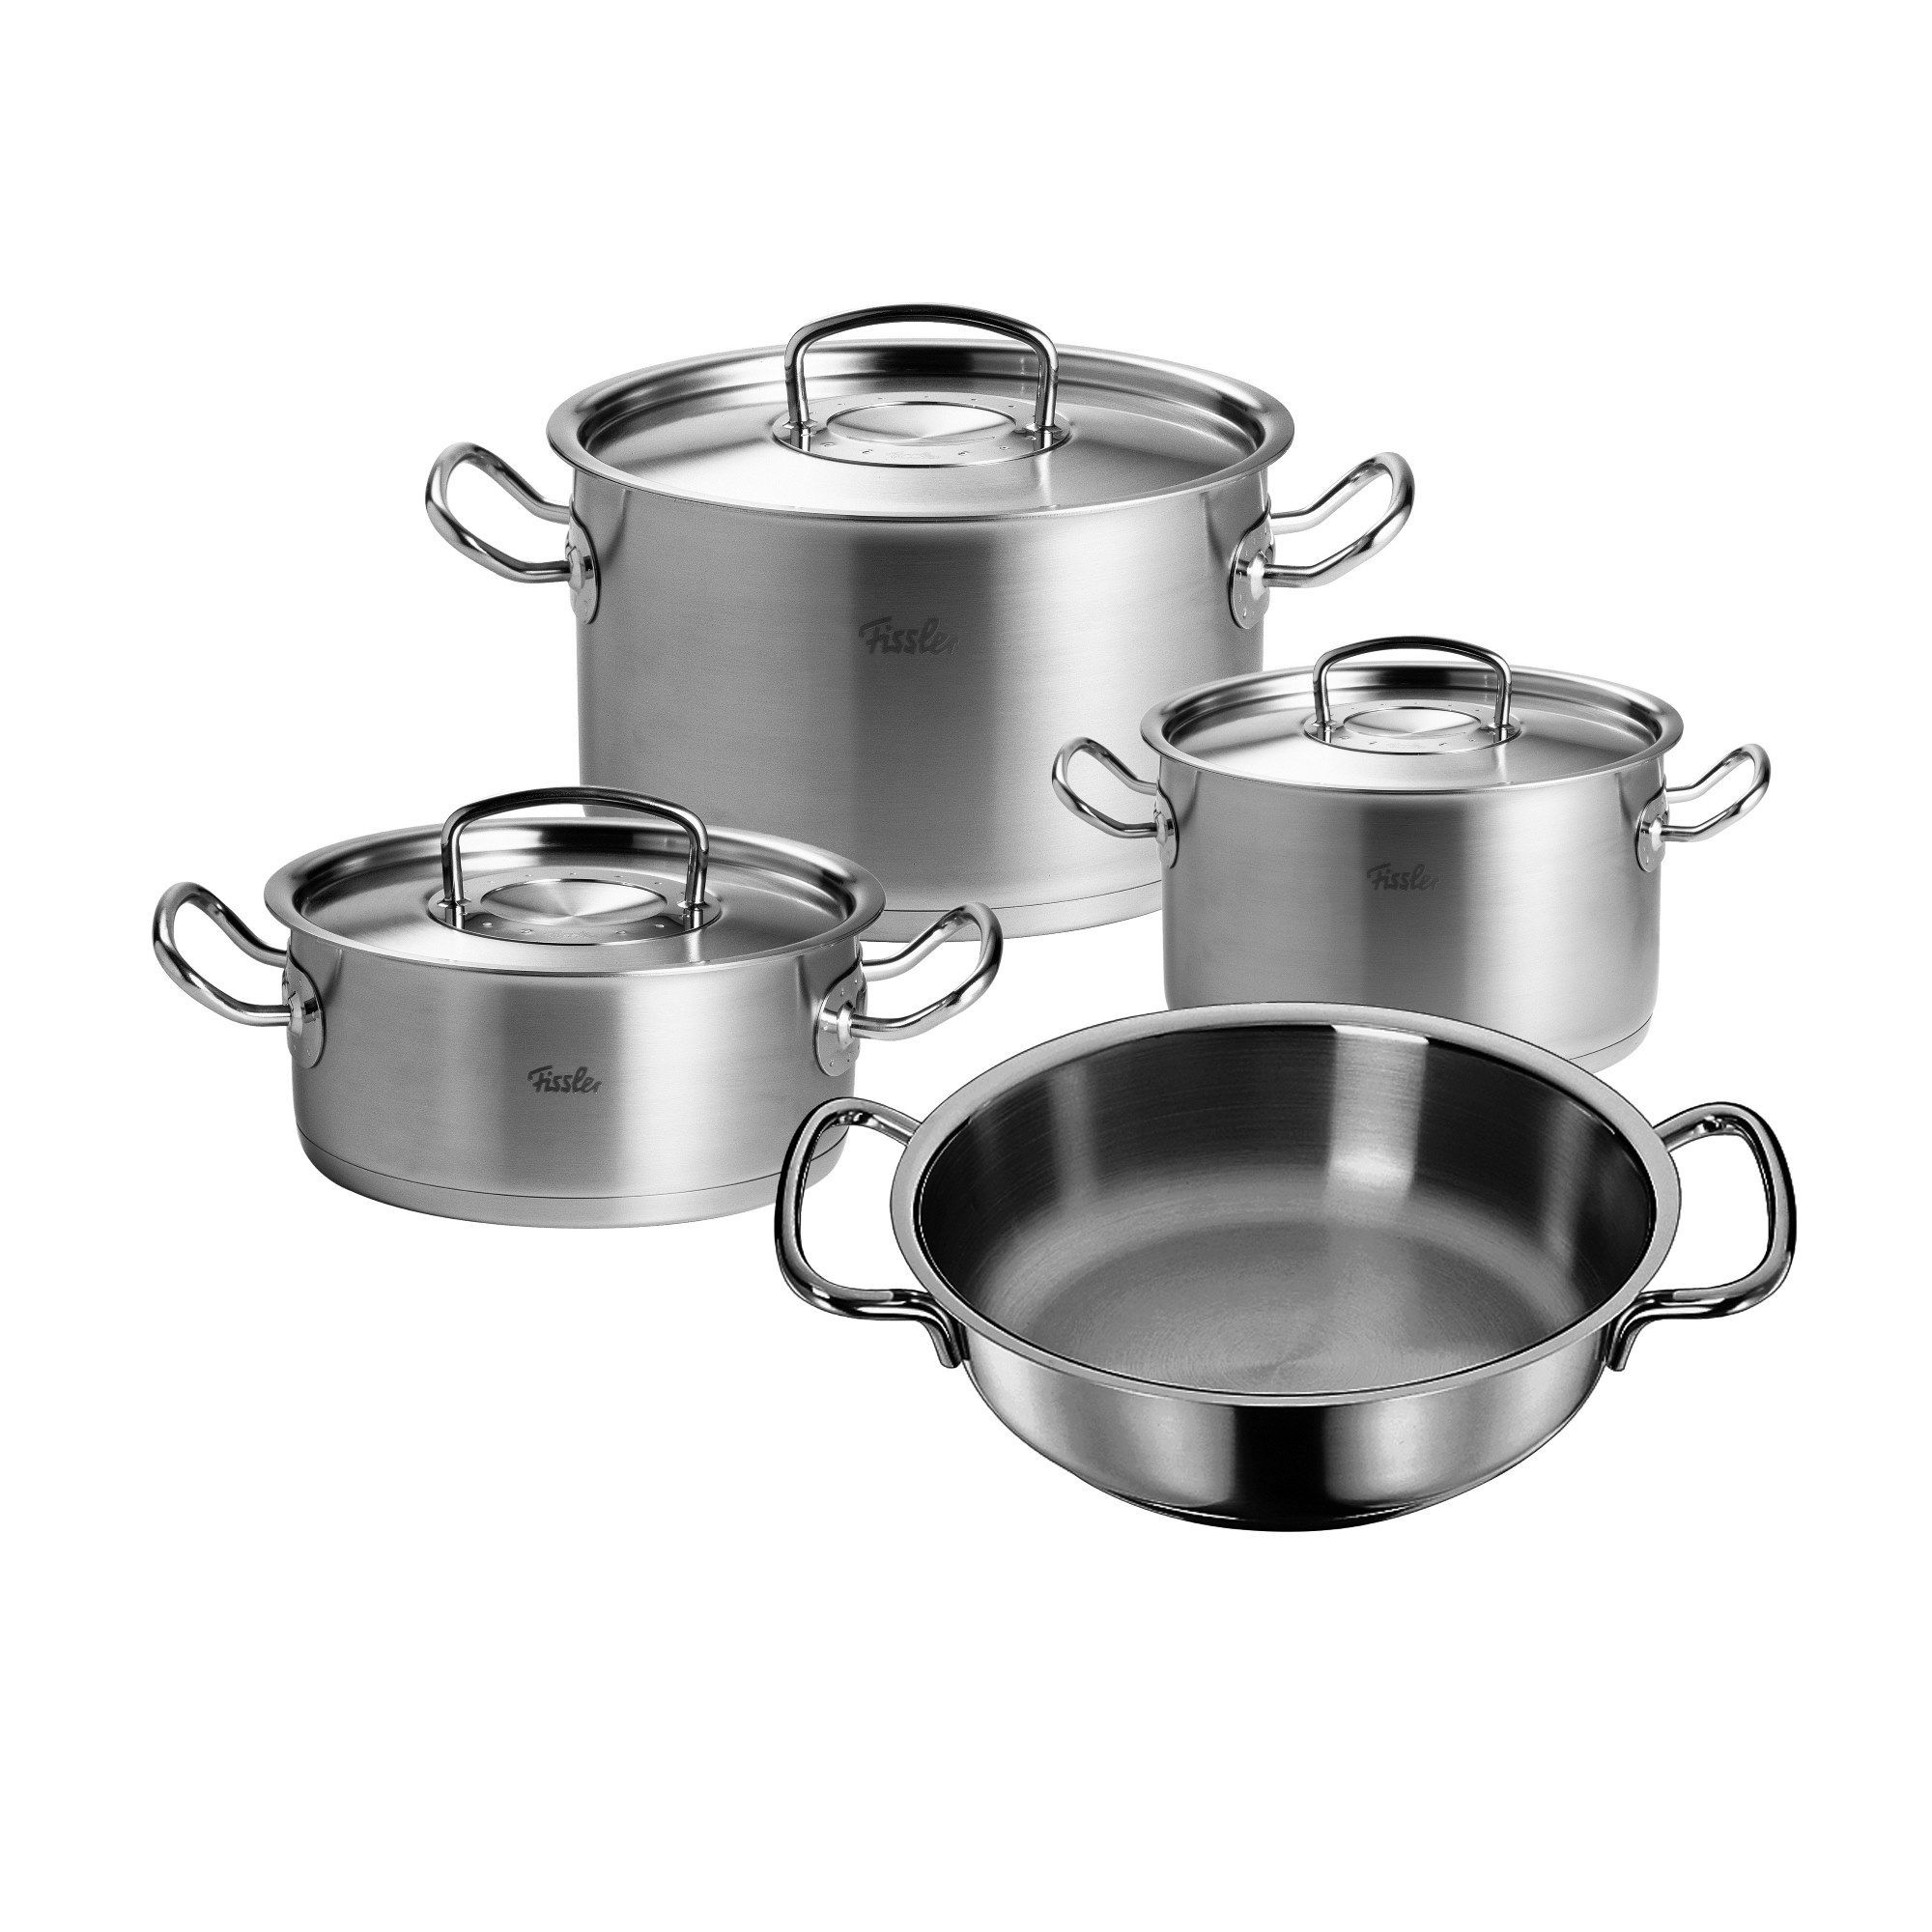 Fissler Profi Collection Set Fissler Topf Set Original Profi Collection 4 Teilig Mit